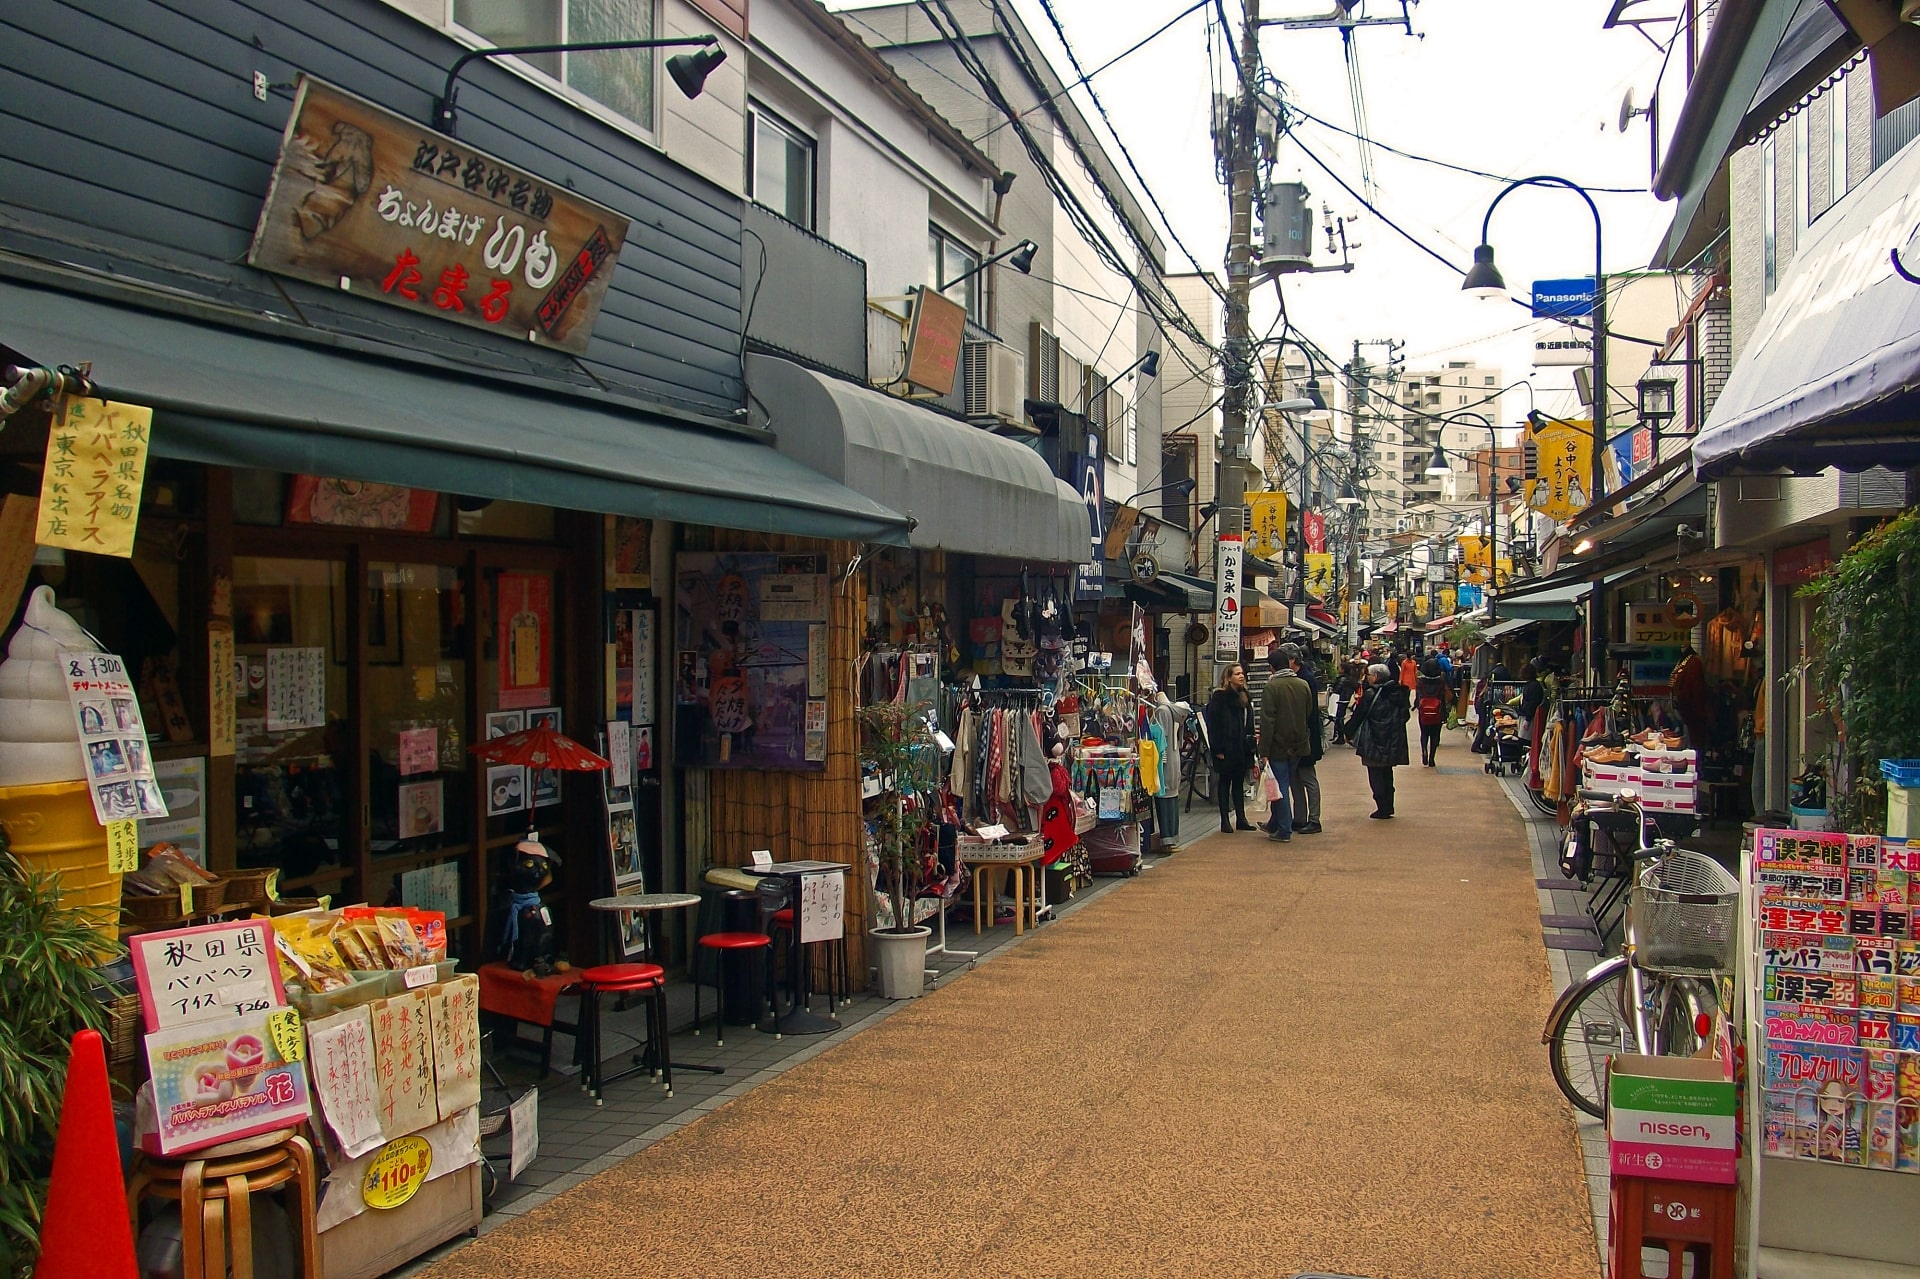 The shopping street of Yanaka Ginza